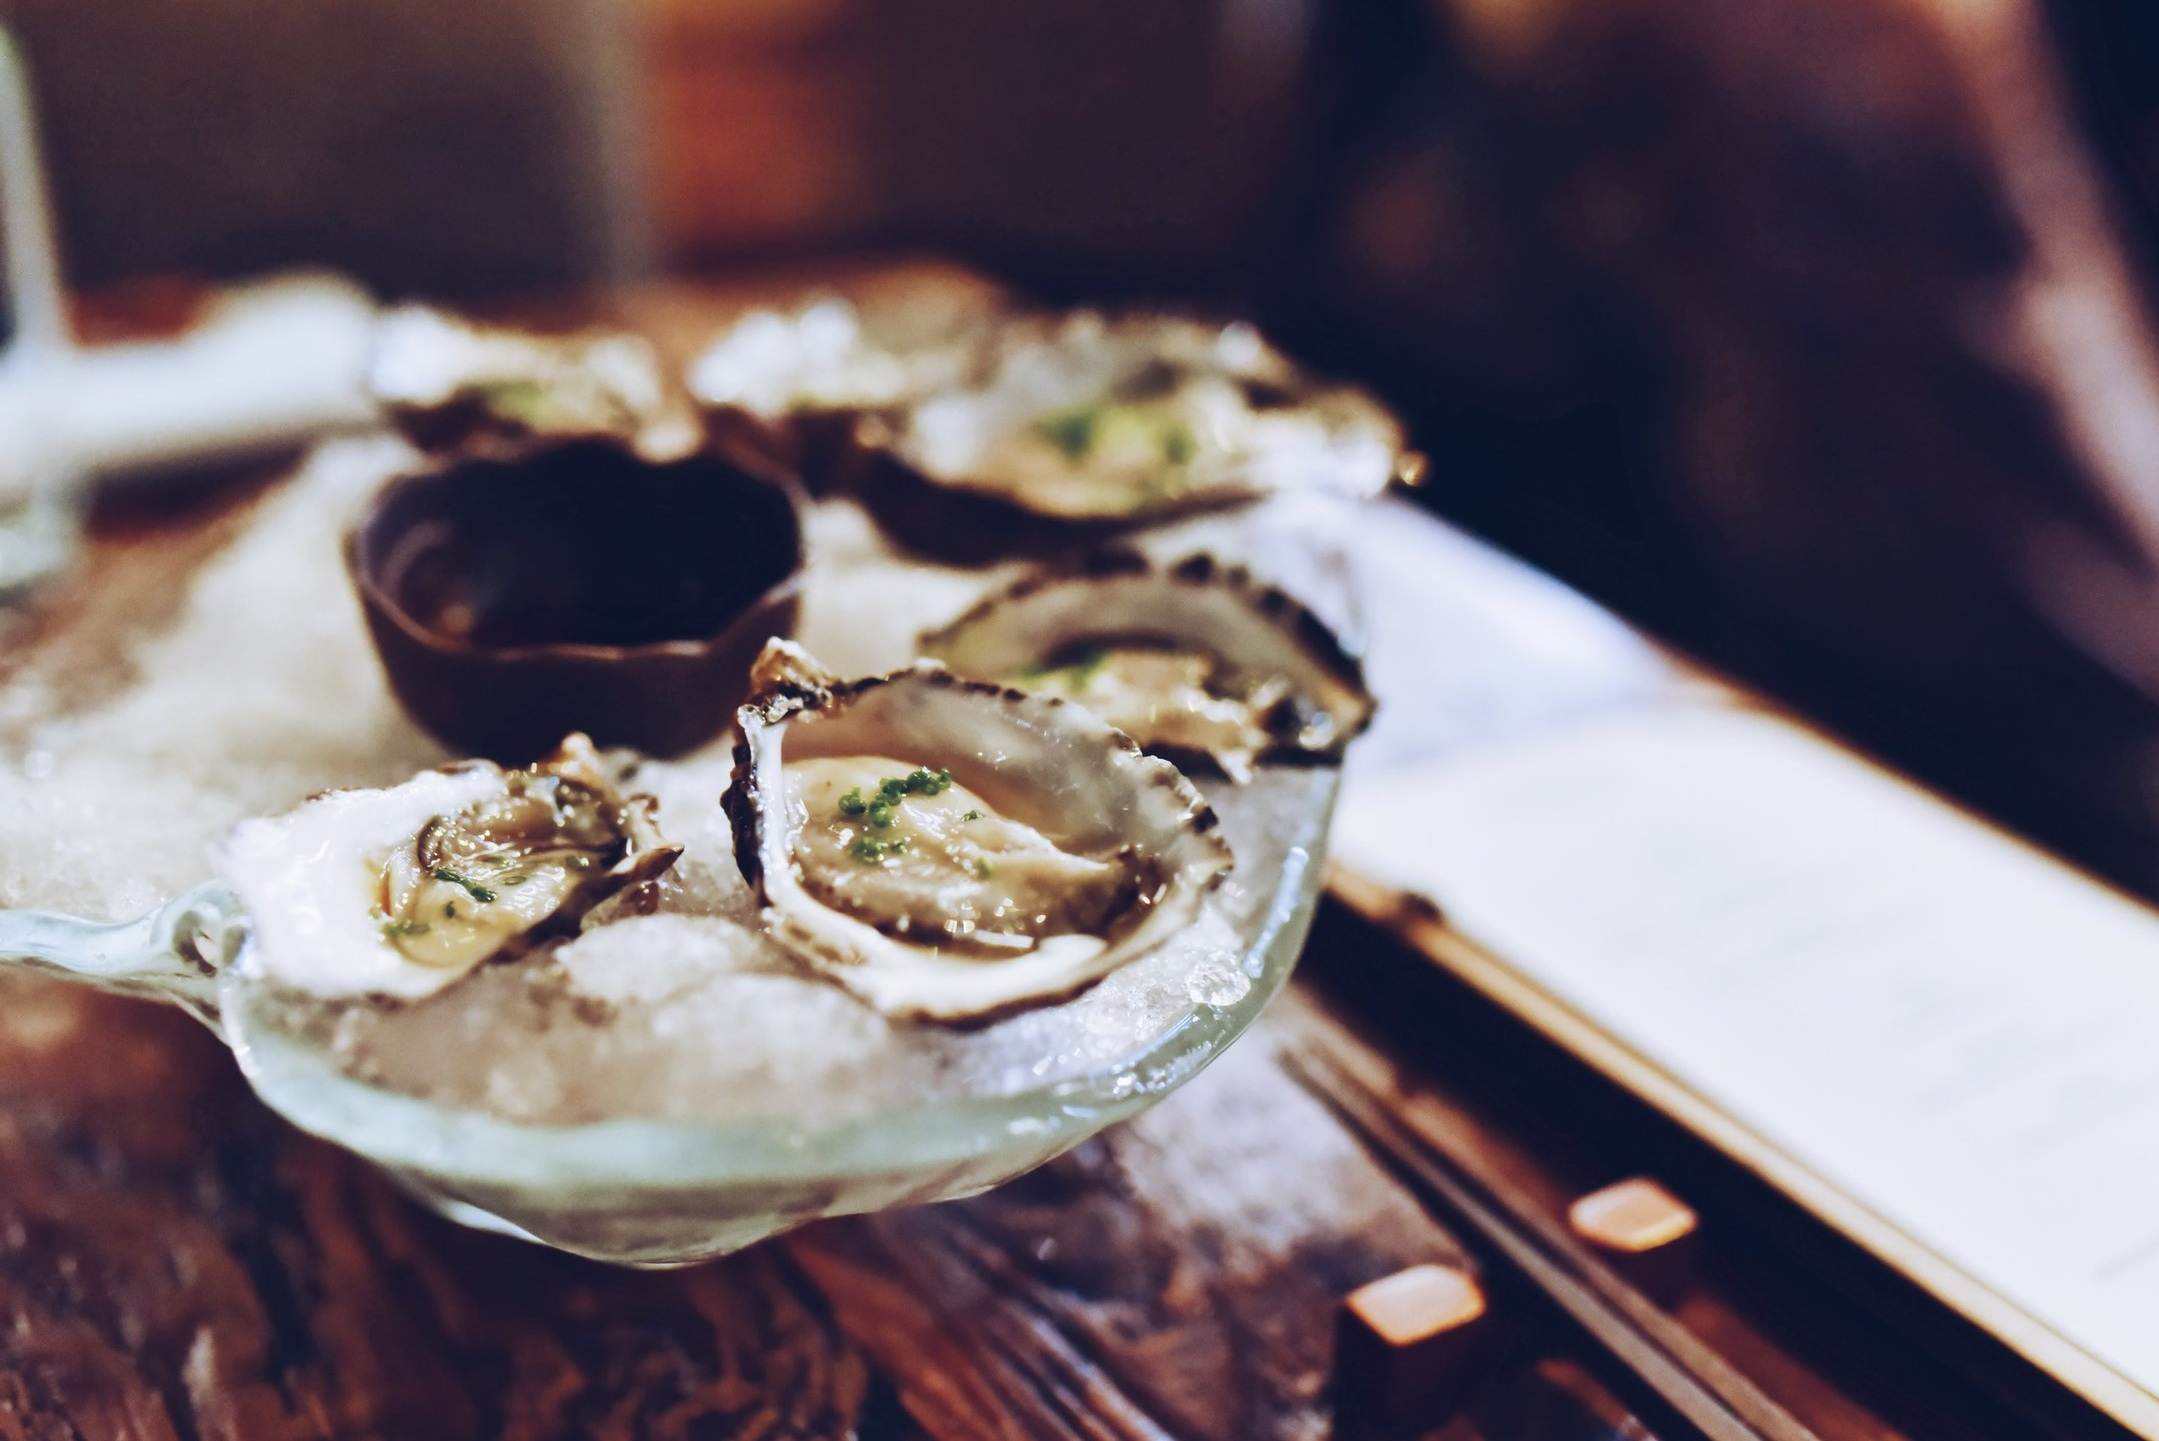 Oysters at Devonport's seafood restaurant, Pearl Oyster Bar & Cafe